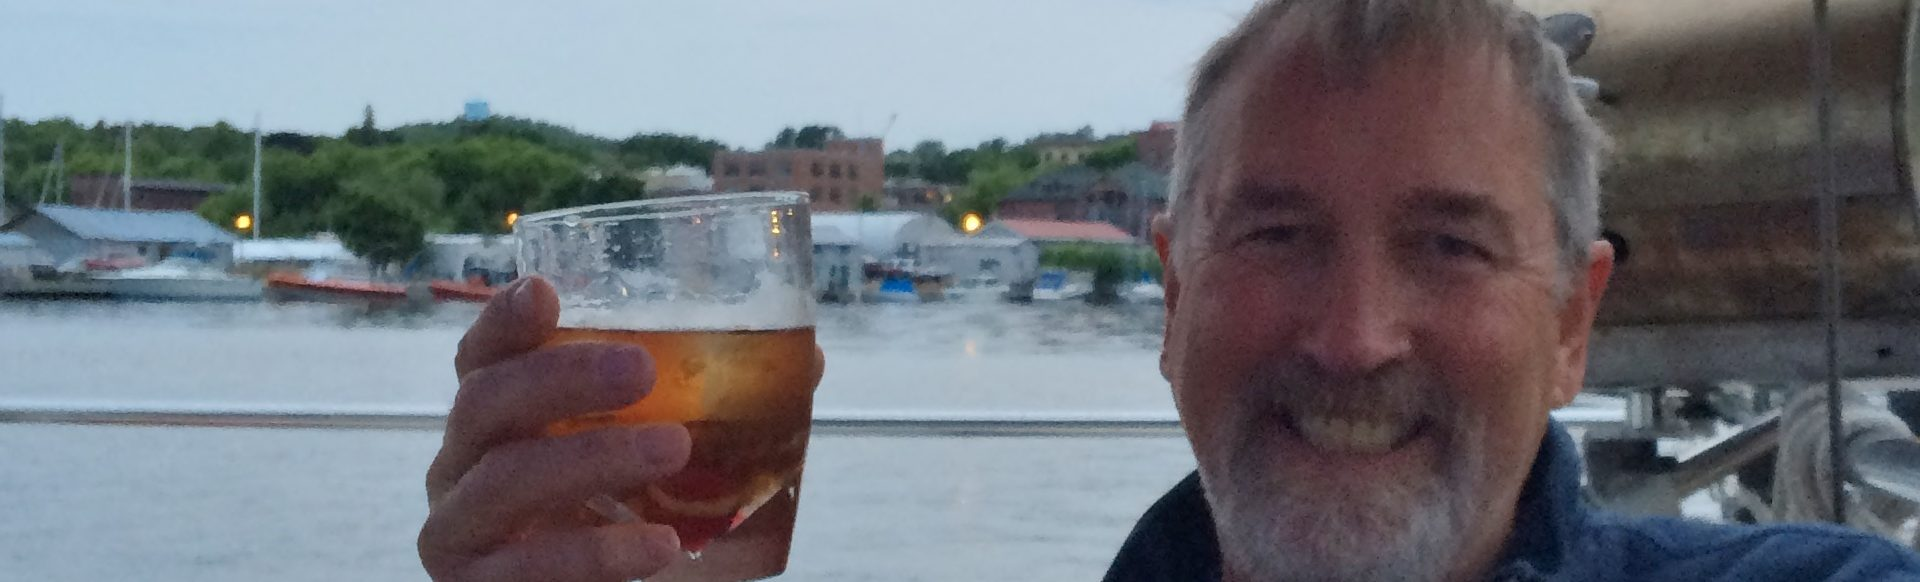 Manhattans in Marquette